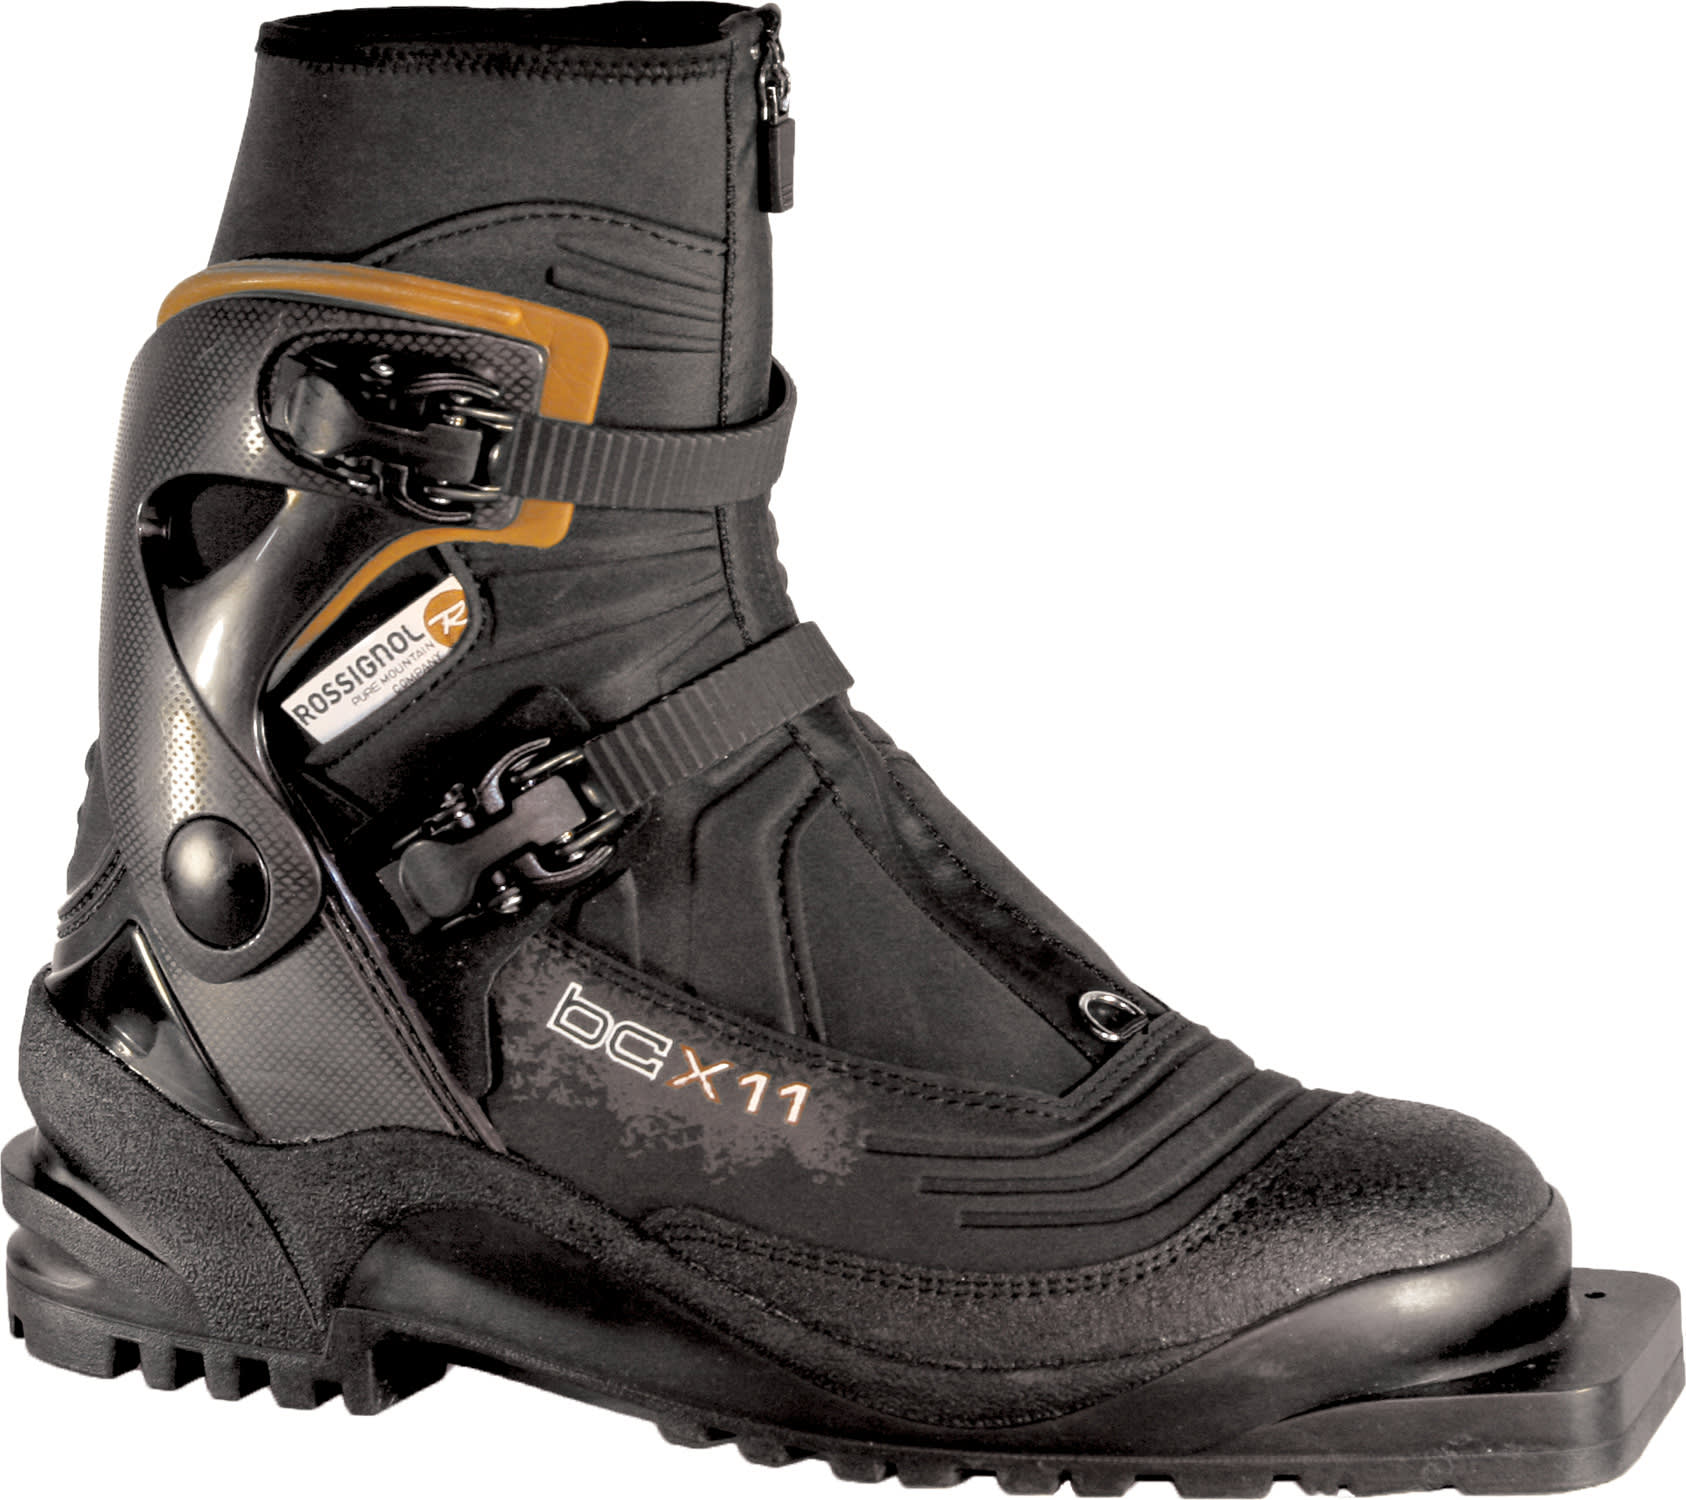 Rossignol Bc X11 Cross Country Ski Boots